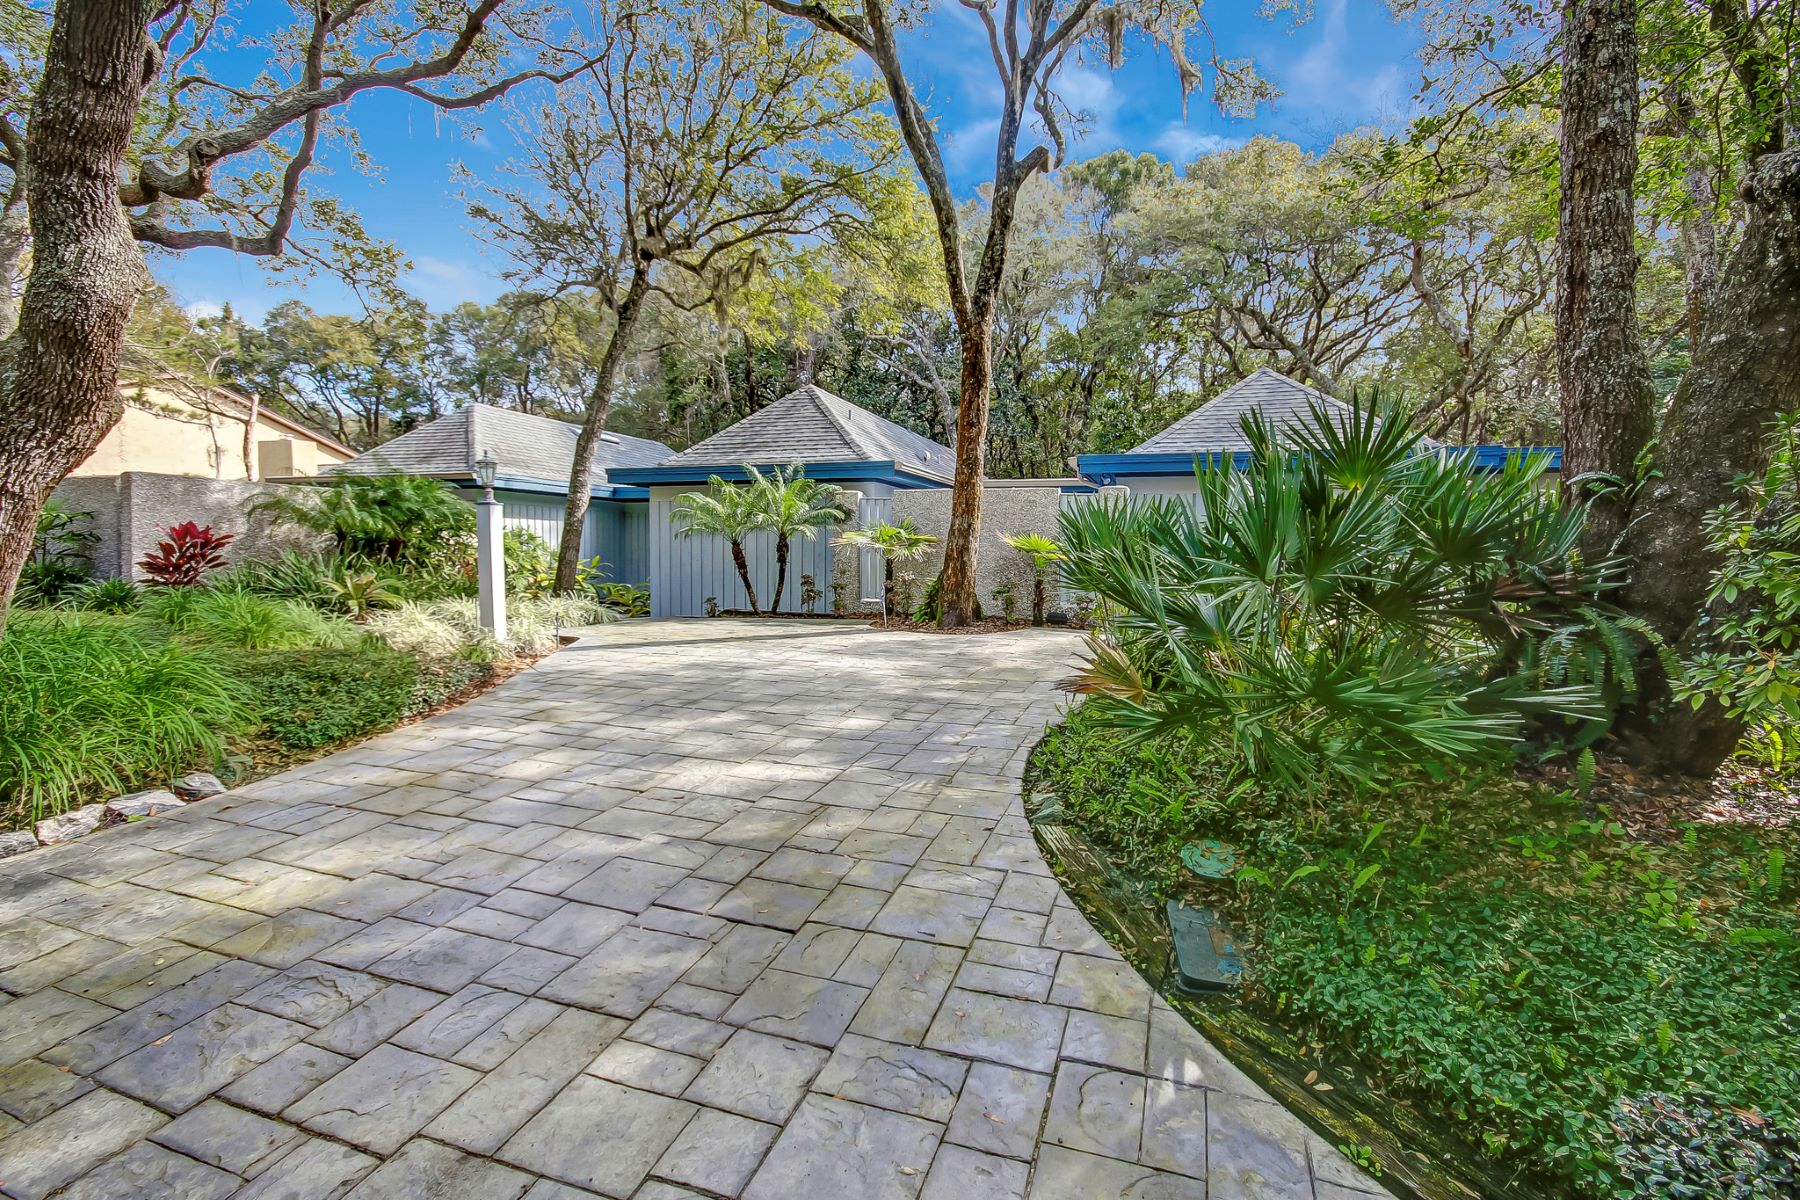 Moradia para Venda às Meticulously Maintained Home on Double Lot with Preservation Views 3 Green Winged Teal Amelia Island, Florida, 32034 Estados Unidos